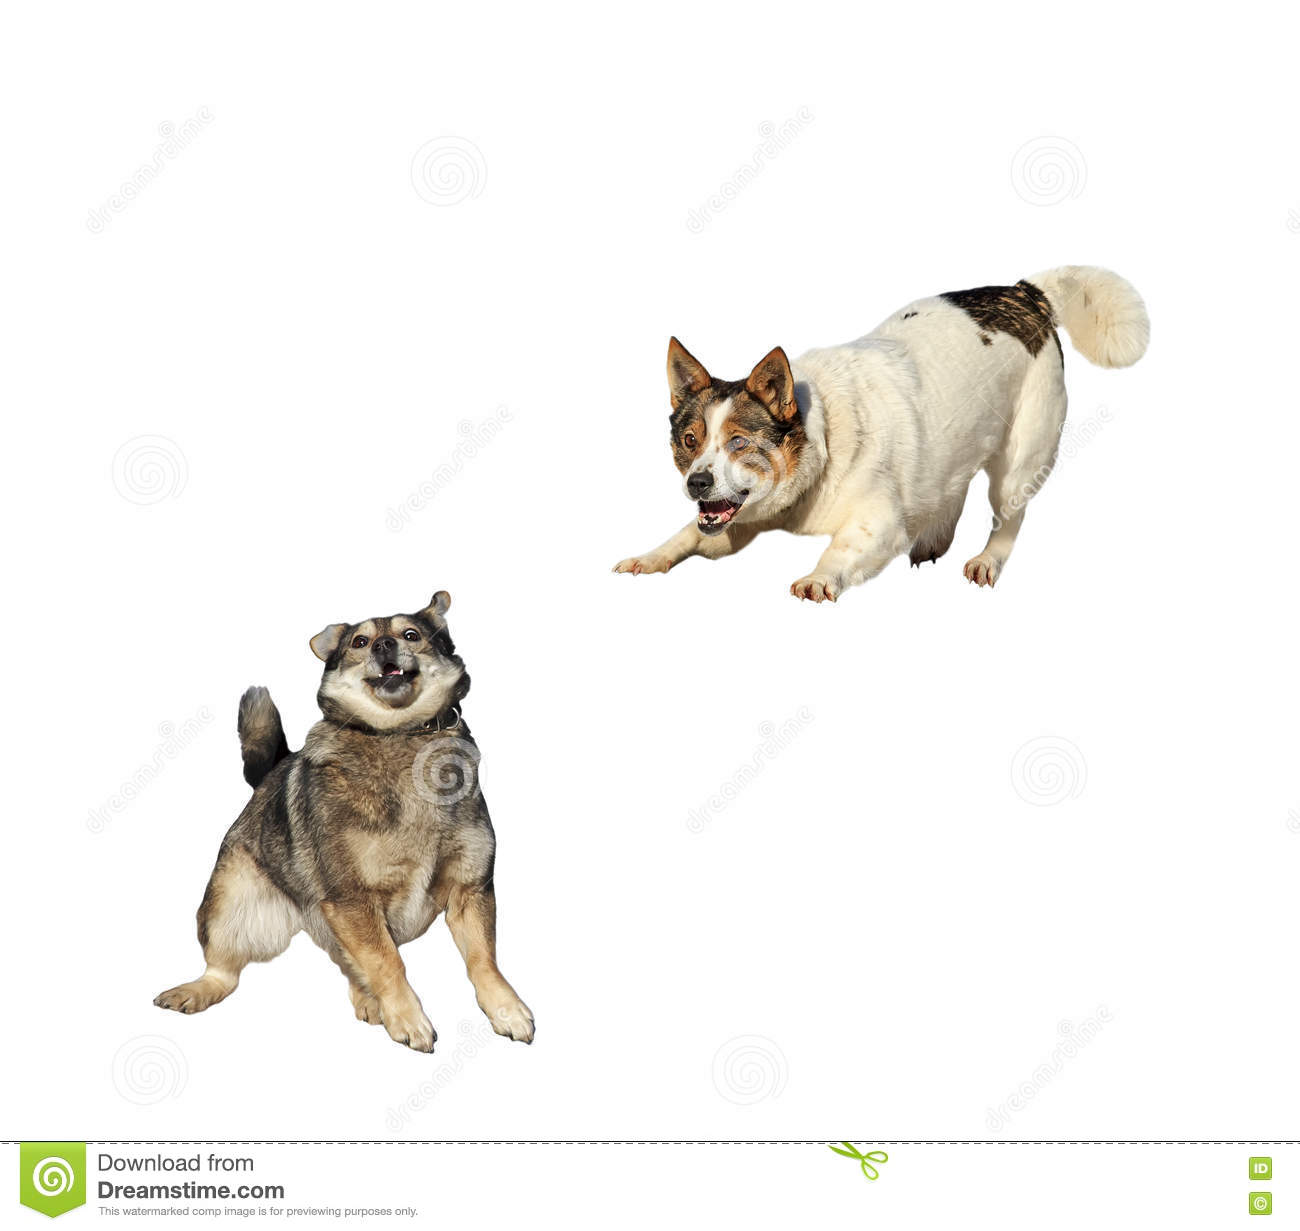 Two funny dog cuddling and fooling around noses on white isolated background